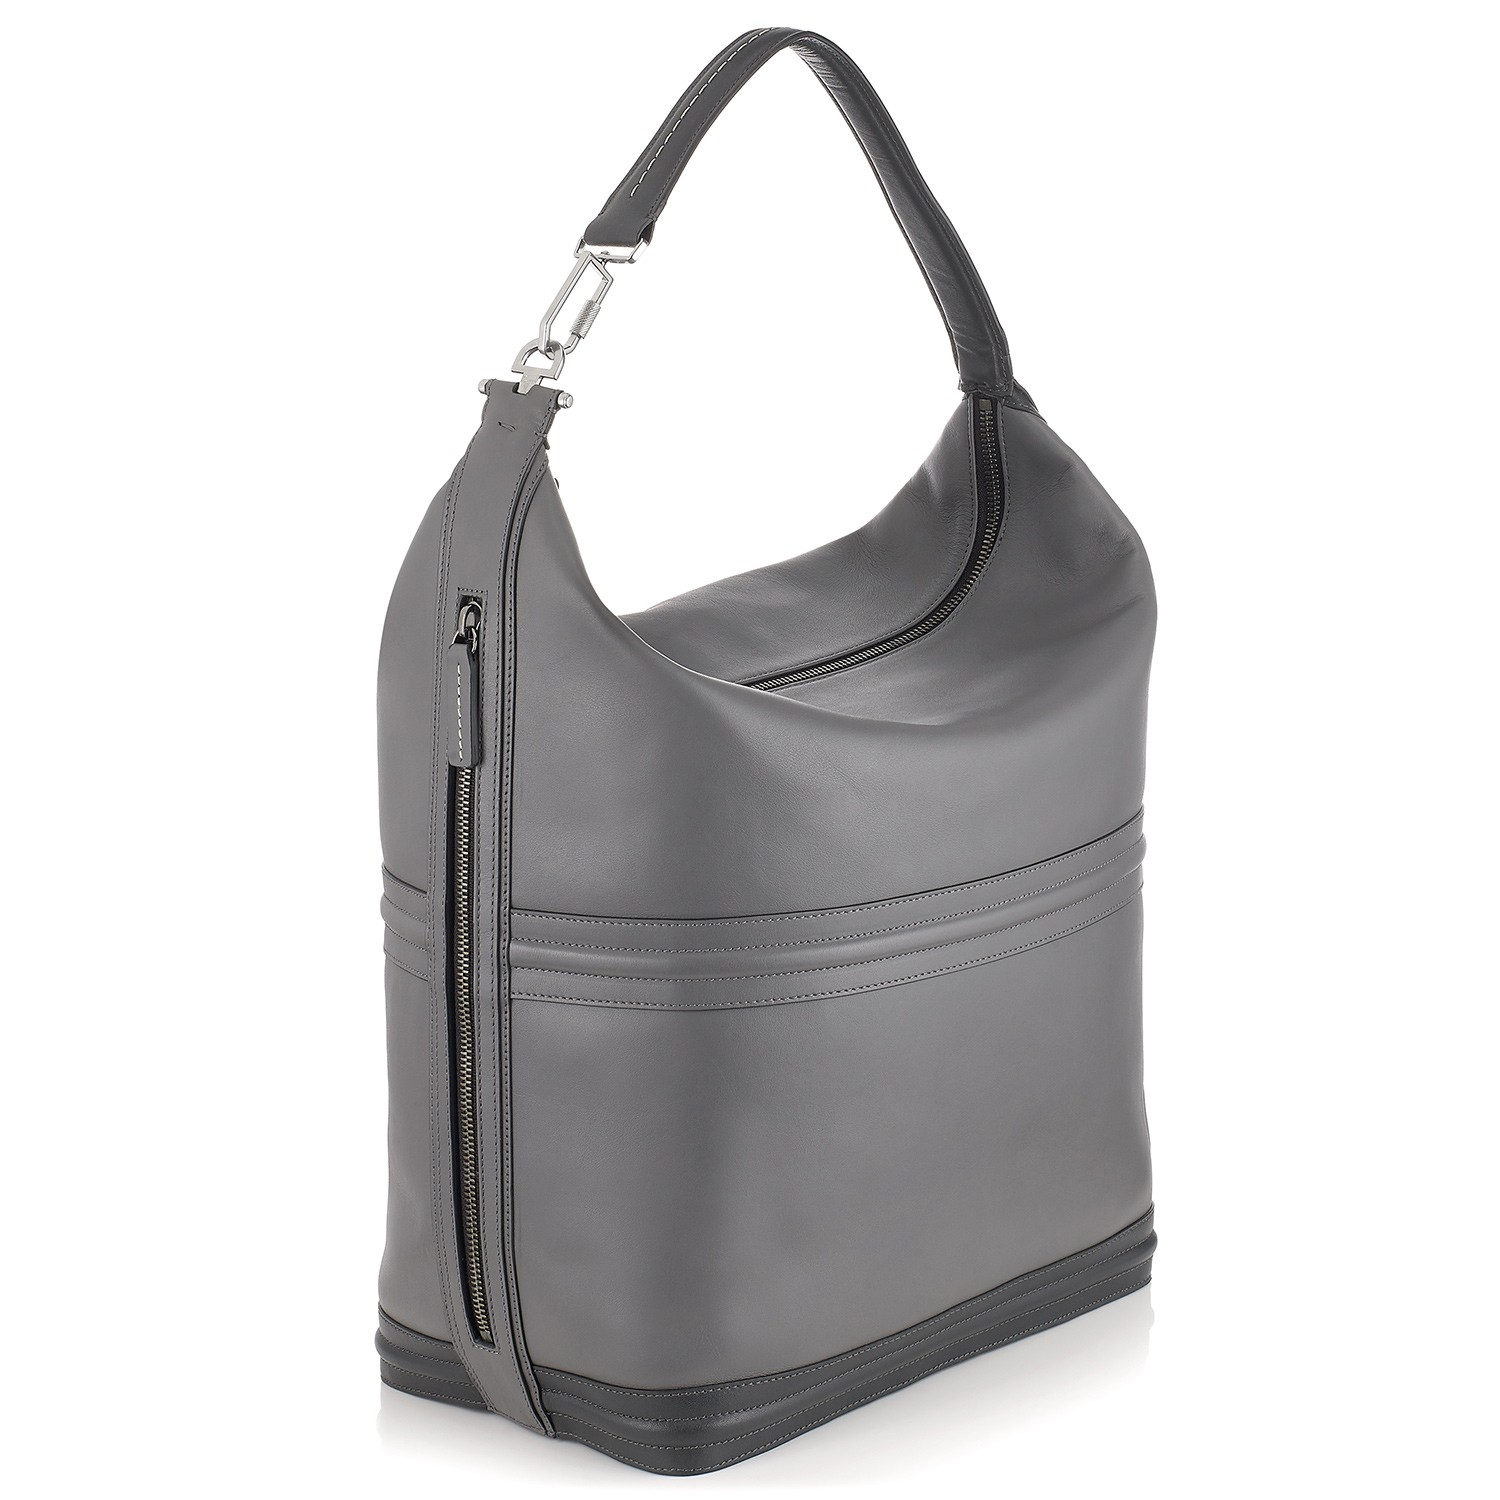 G36 Unisex Hobo Bag Shark / Smoke Grey Side